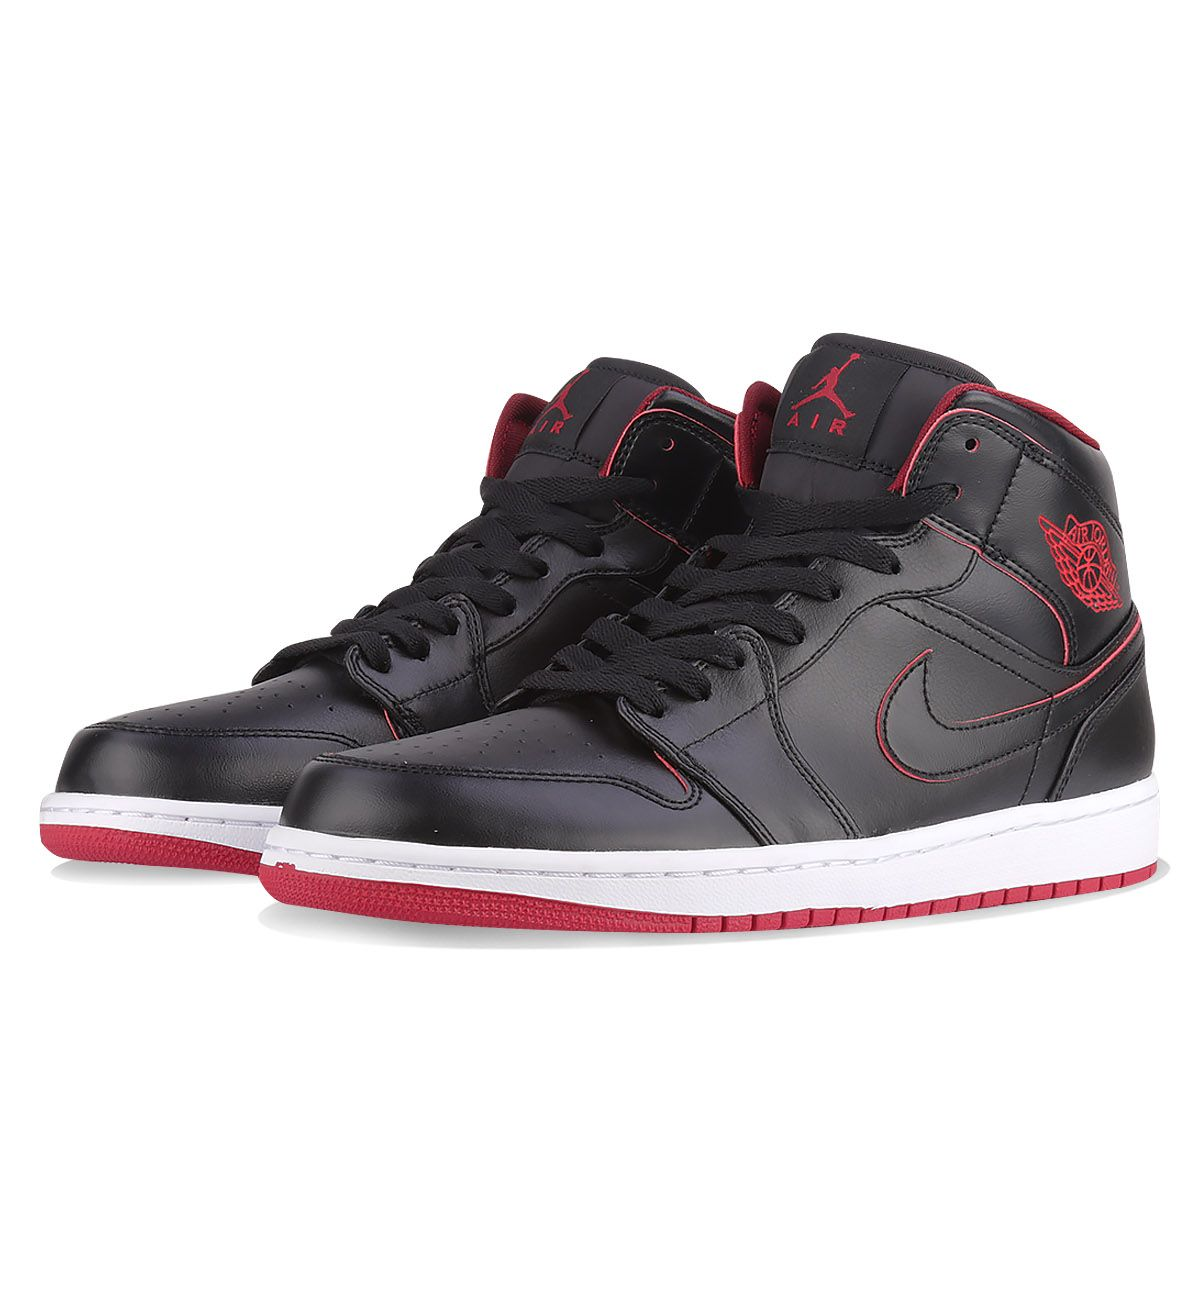 purchase cheap 8b4aa 90166 Nike Air Jordan 1 Mid Black   White   Gym Red - Nike Air Jordan The Nike Air  Jordan 1 Mid Black has a combination full-grain leather and smooth Nubuck  upper ...